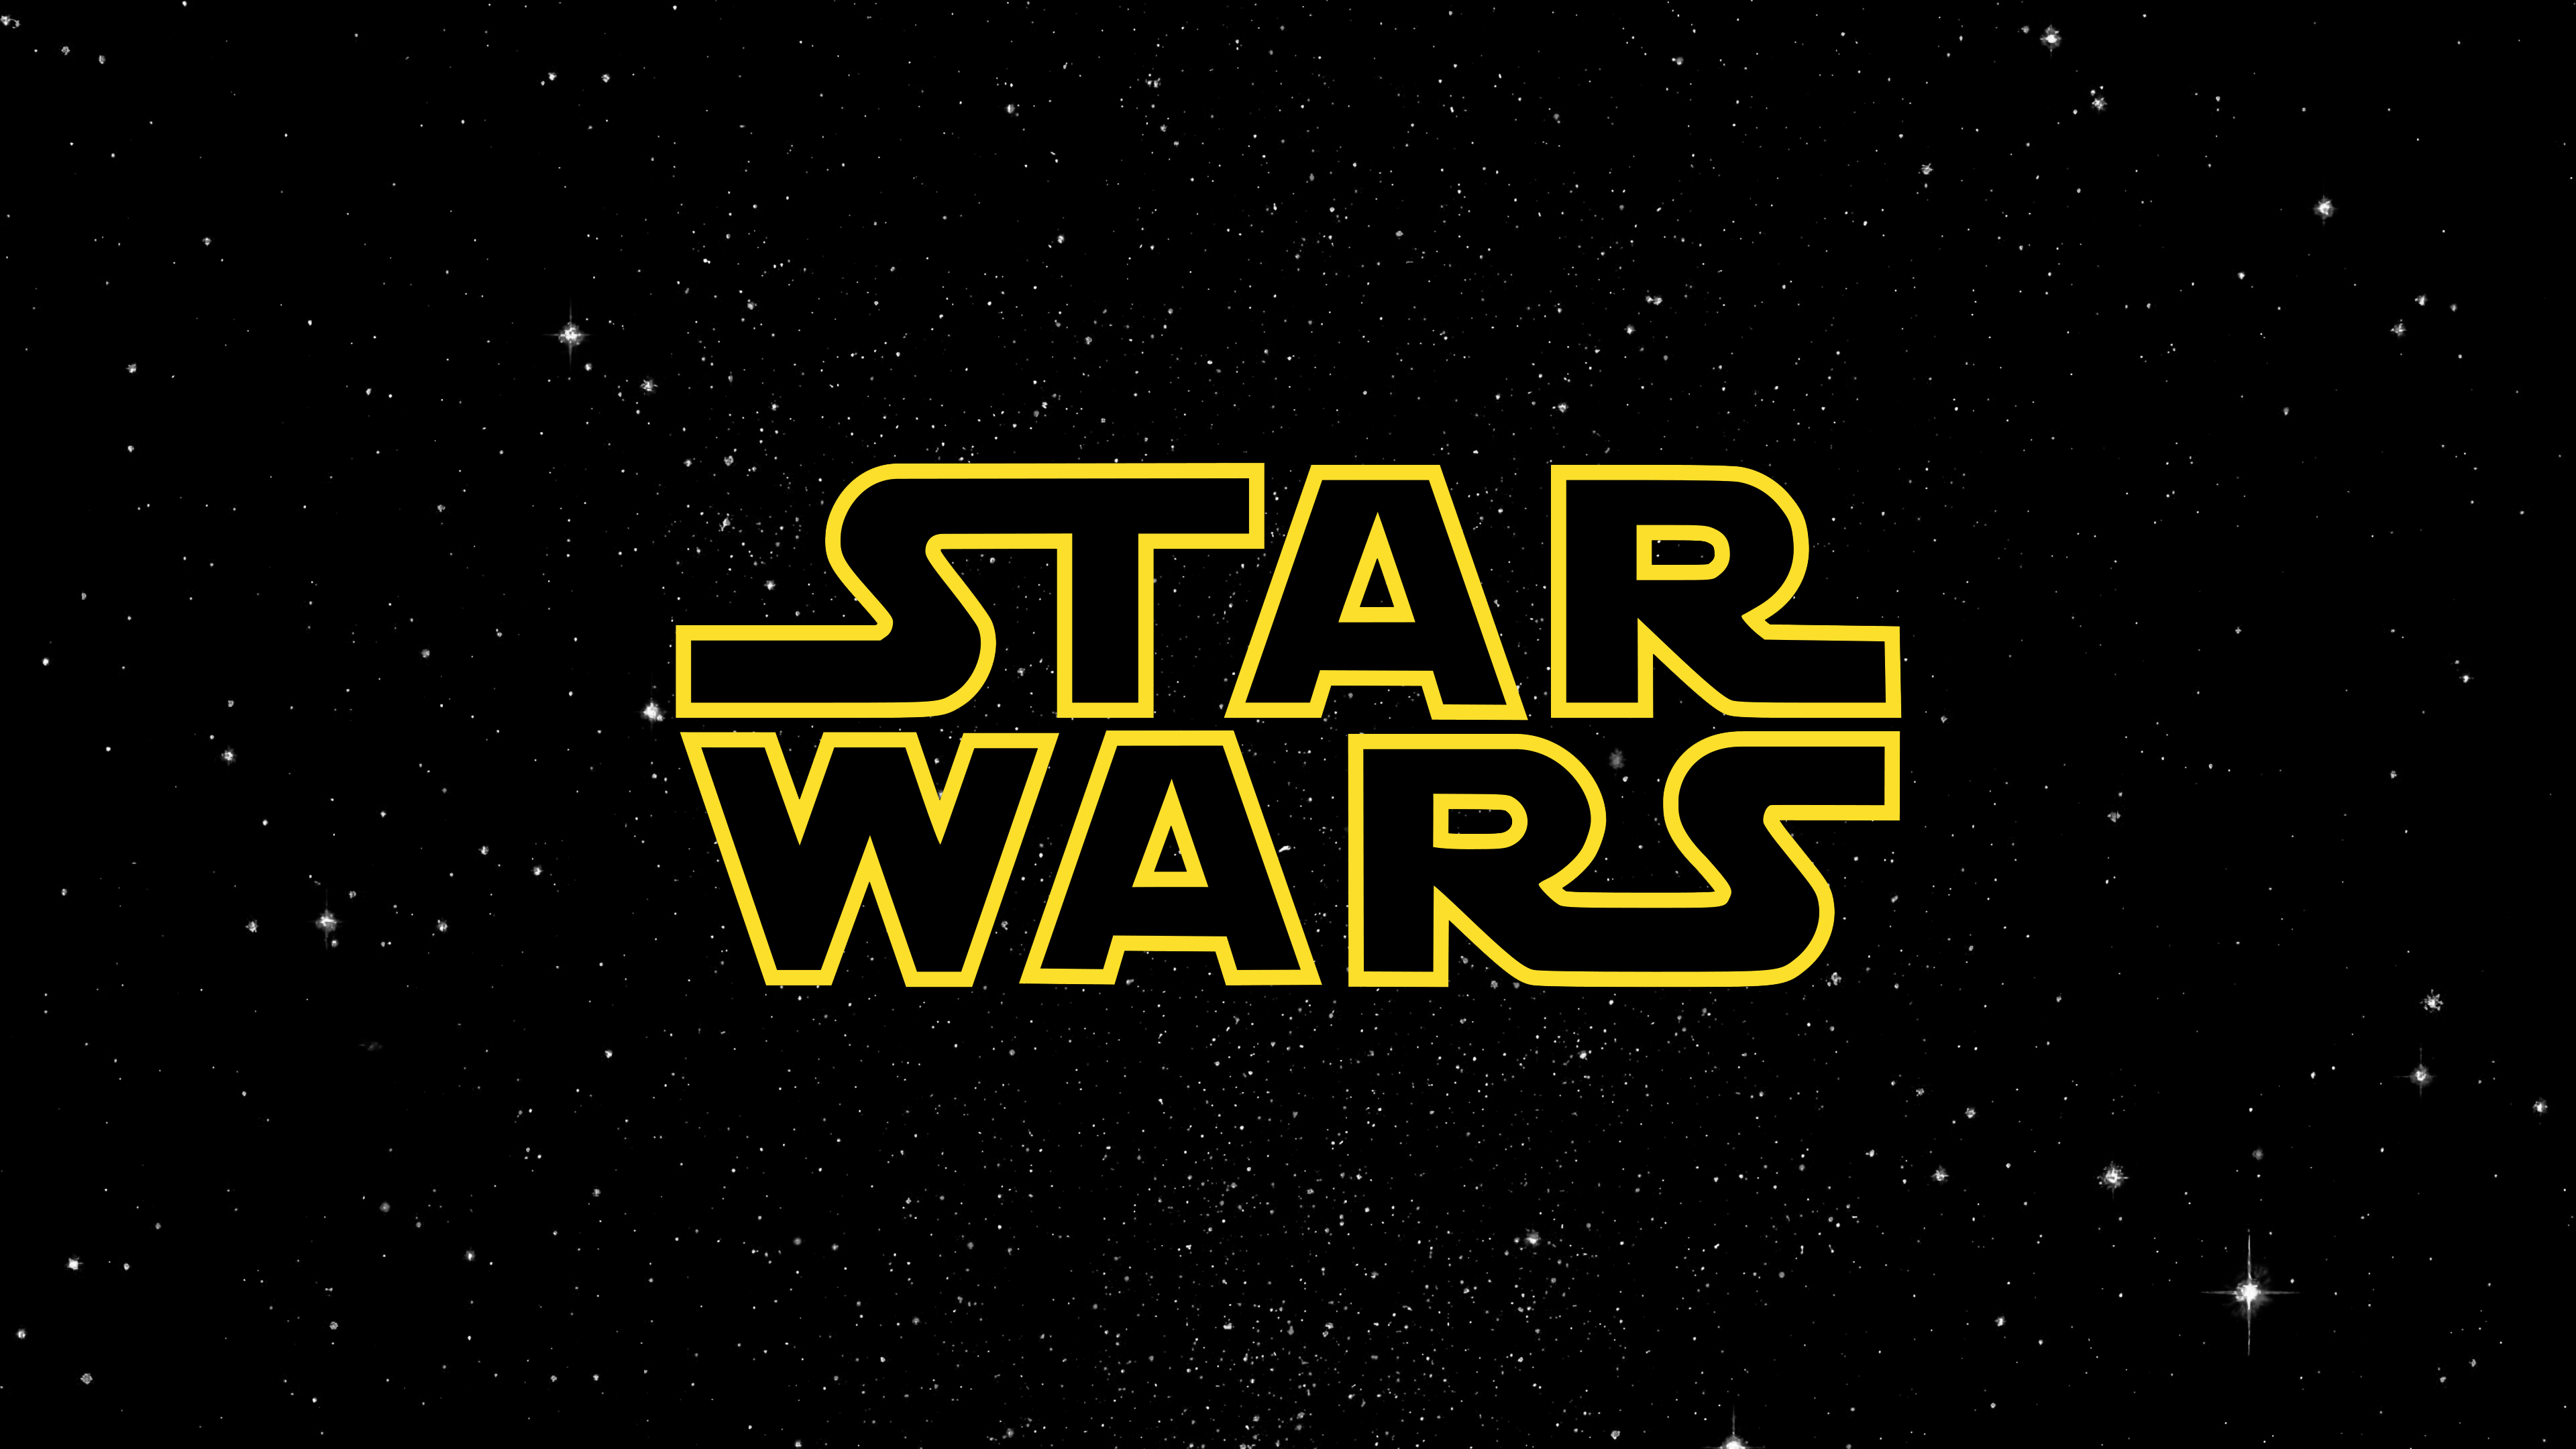 Star Wars Logo Wallpaper 4k Ultra Hd Id3654